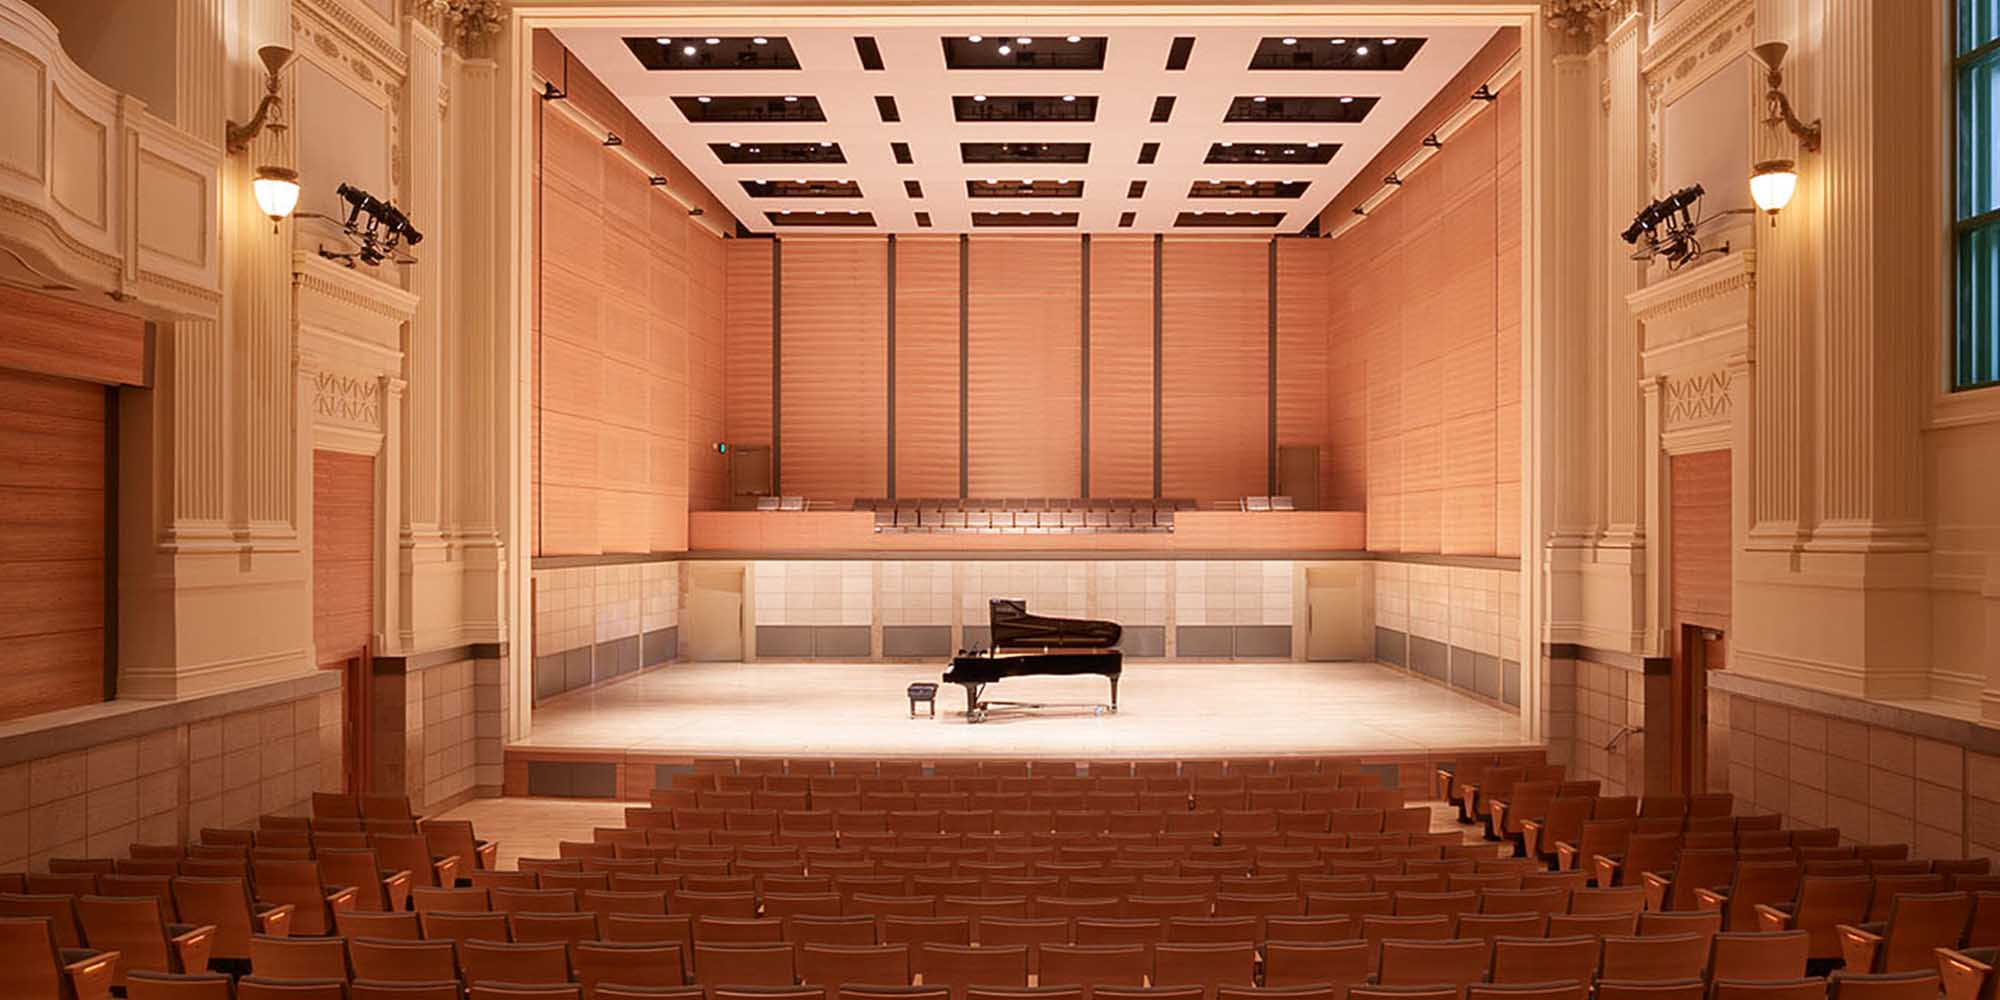 A shot of the Caroline H. Hume Concert Hall at the San Francisco Conservatory of Music